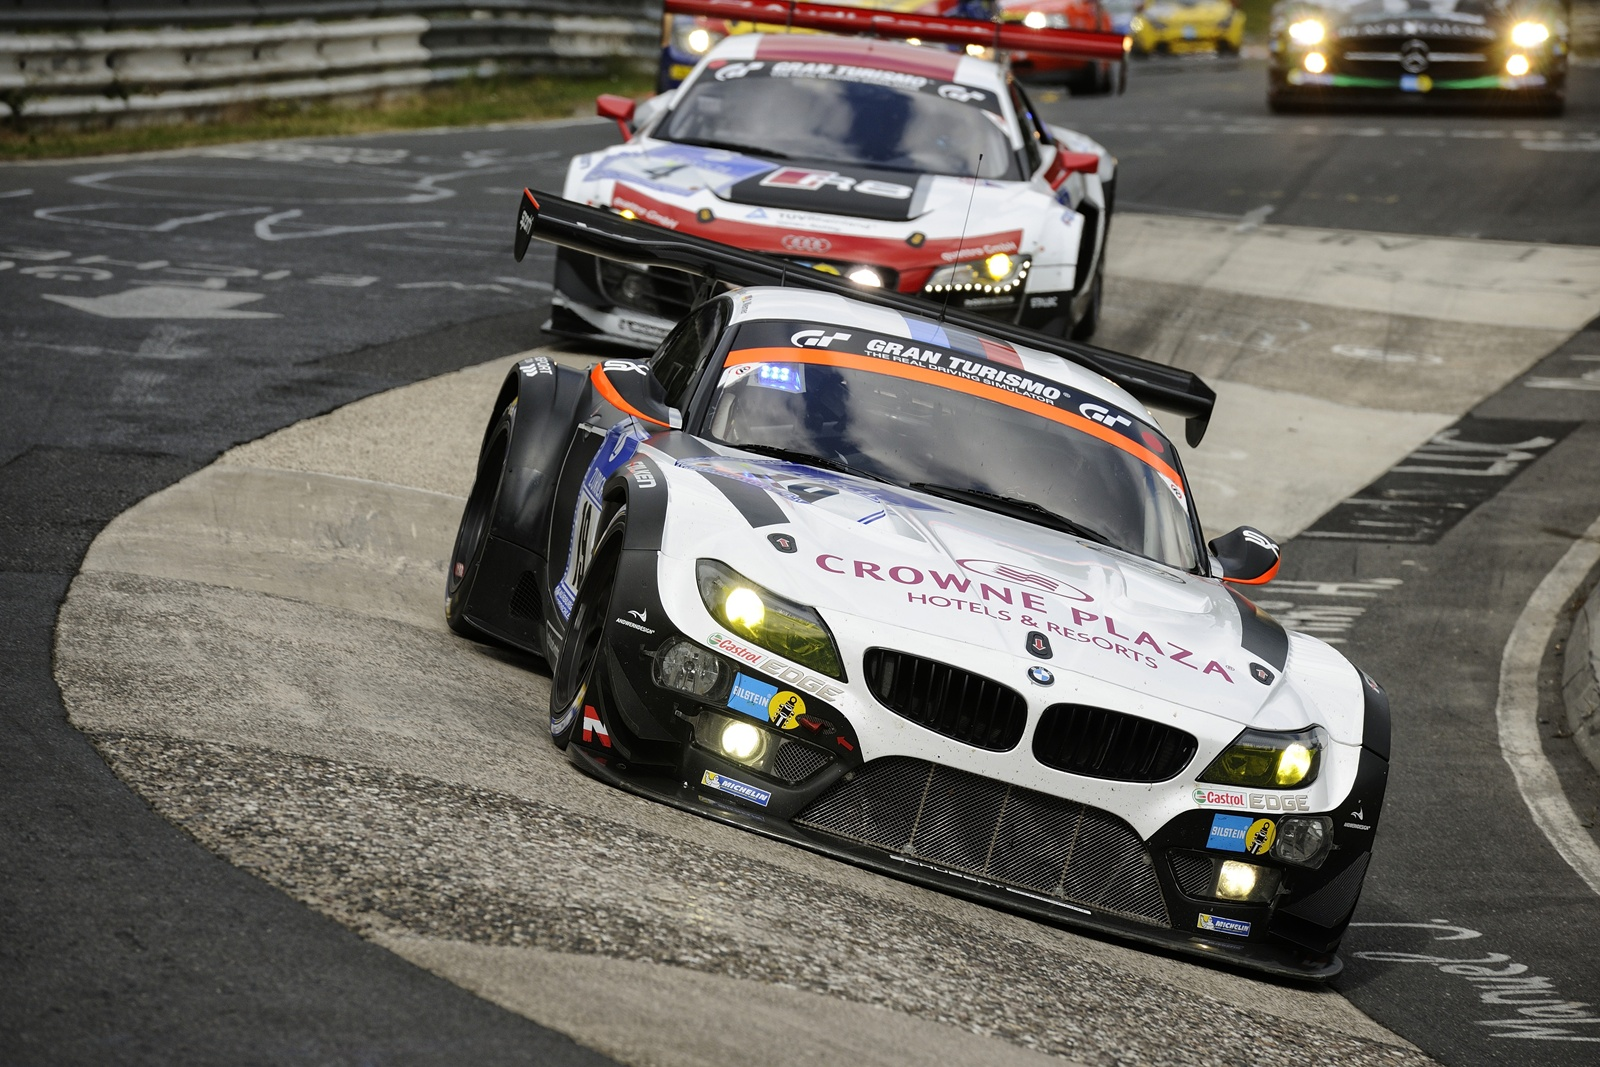 Ambassador Car Wallpaper Bmw Leaves 24 Hours Of Nurburgring Race Disappointed And